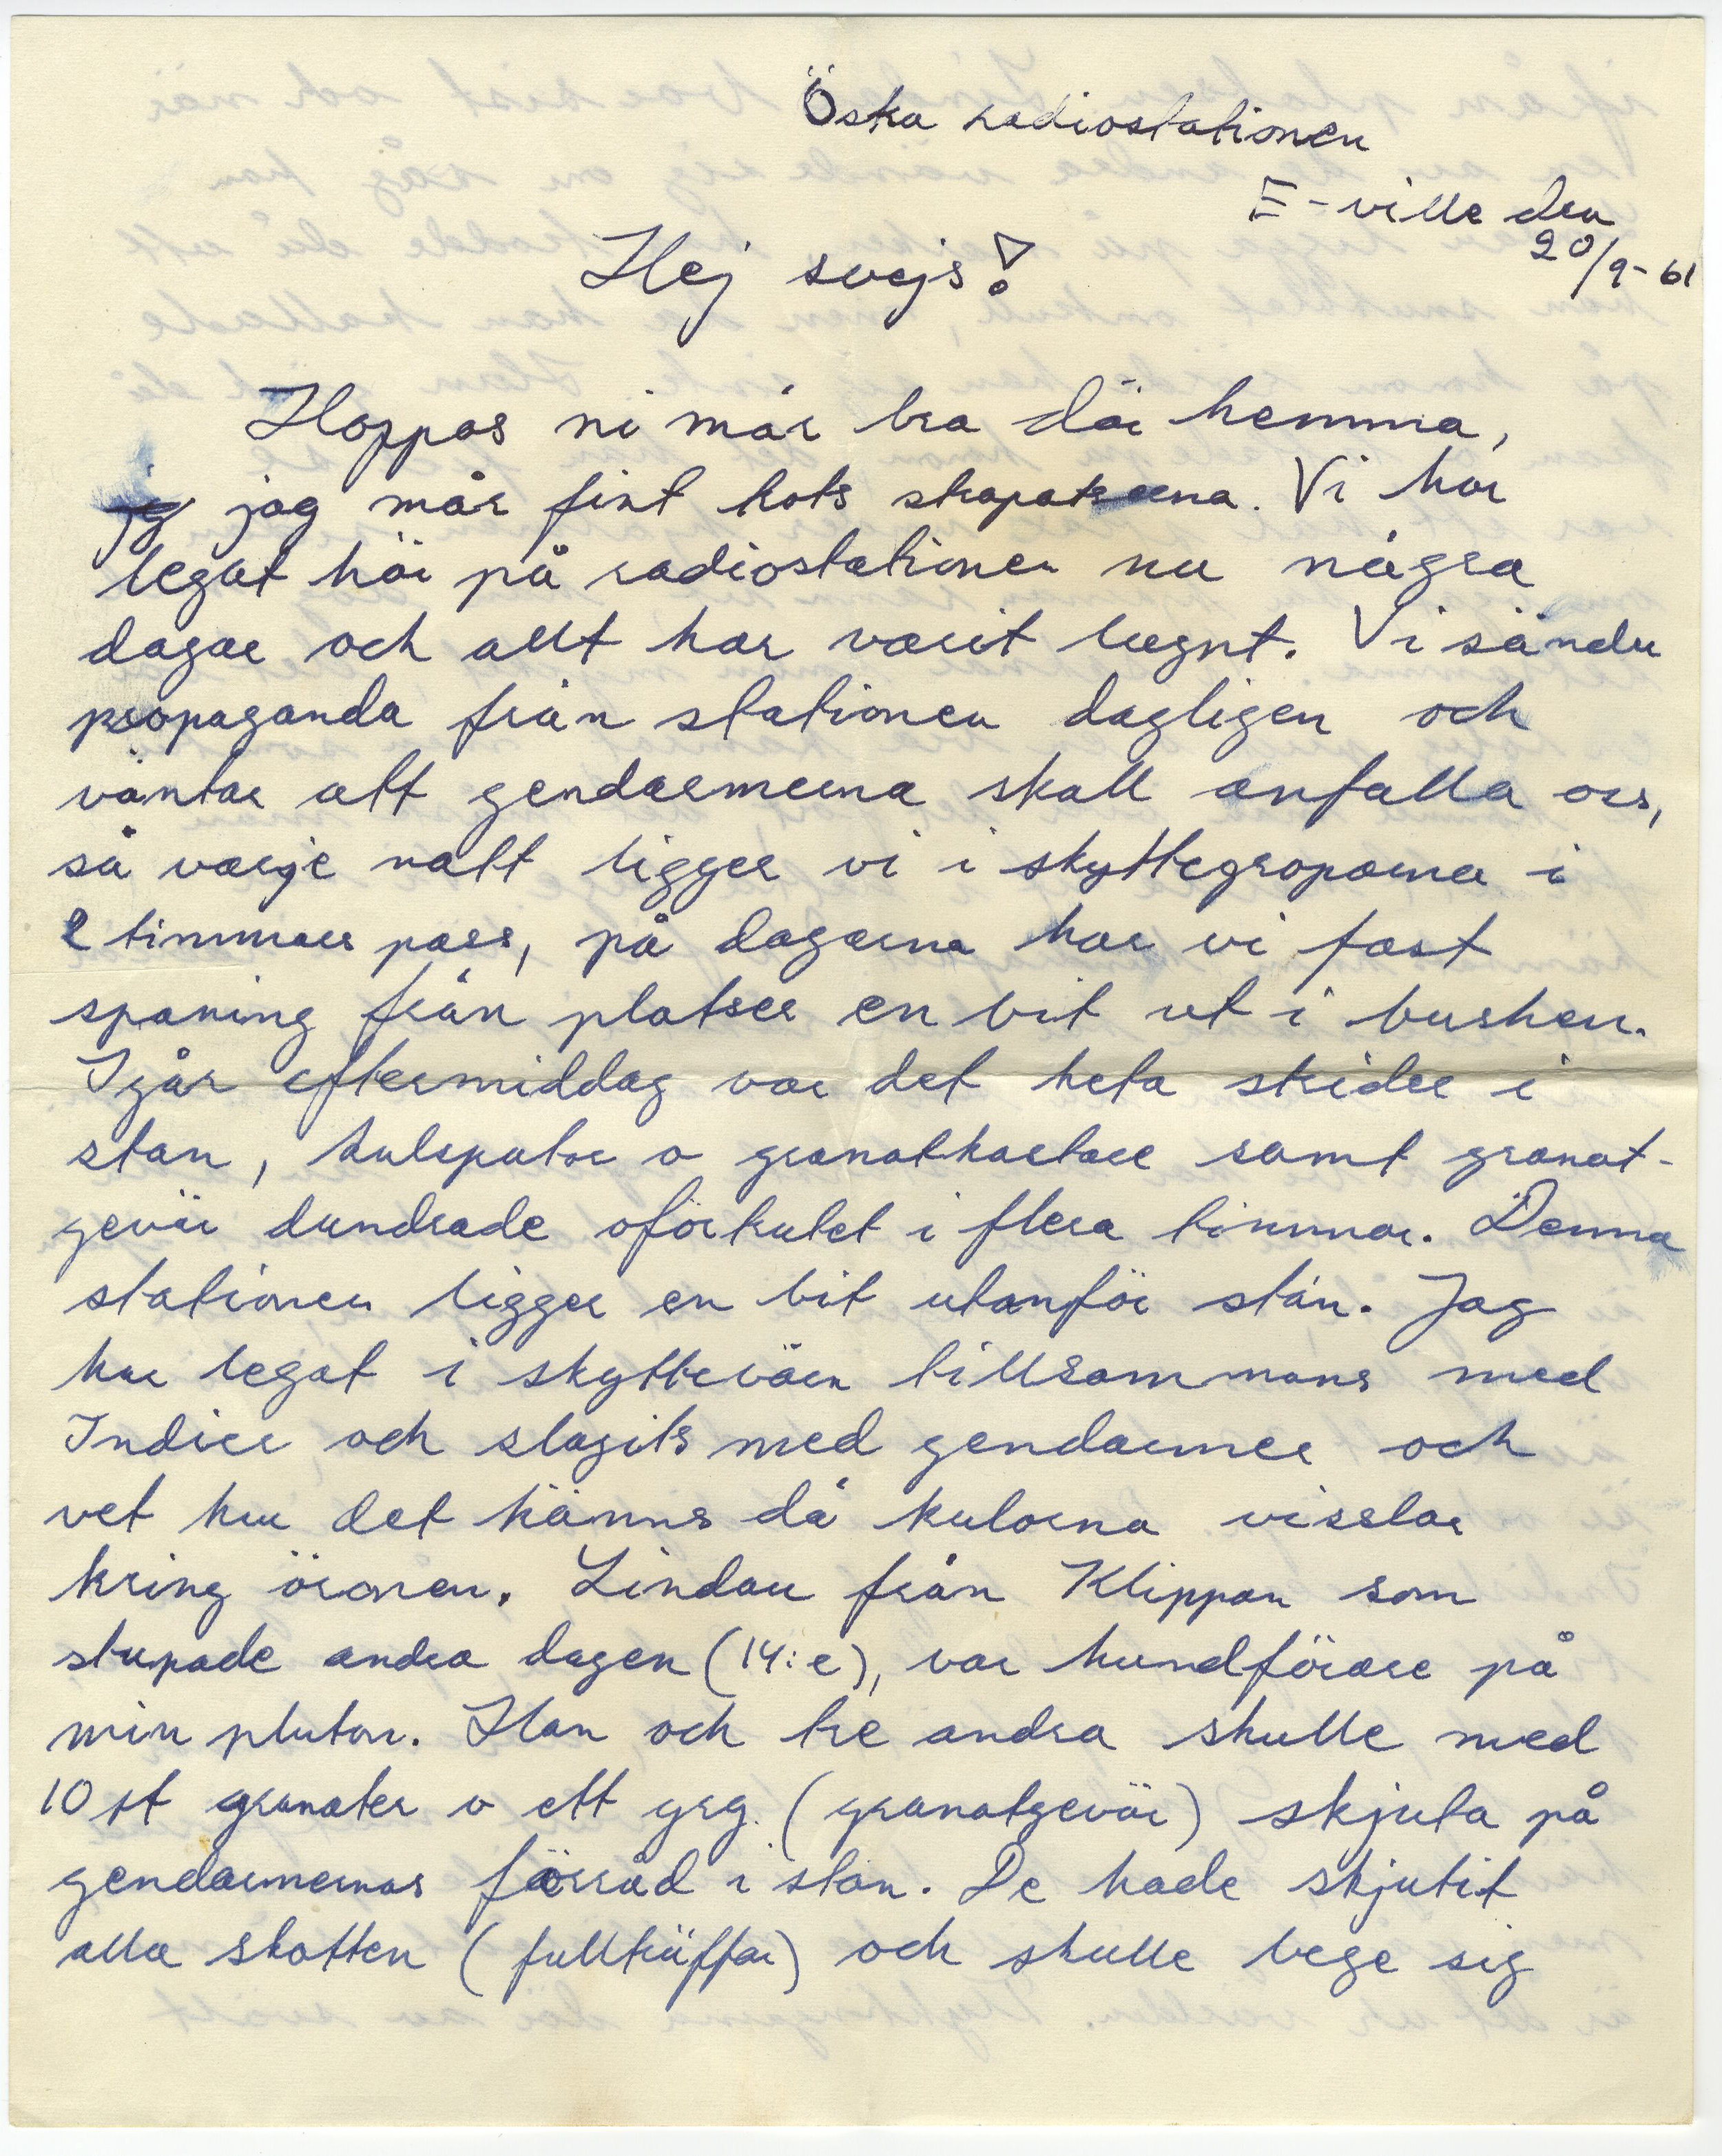 "Page from Lars Frost's letter to his mother. Elisabethville, 20-09-1961. The letter mentions the soldier Bengt Göran Lindau, who was killed in action 14-09-1961."" We miss him a lot, he is a funny bloke and a good comrade, but as luck will have it, you get over it quickly, you have to if you are to endure in this situation ."""